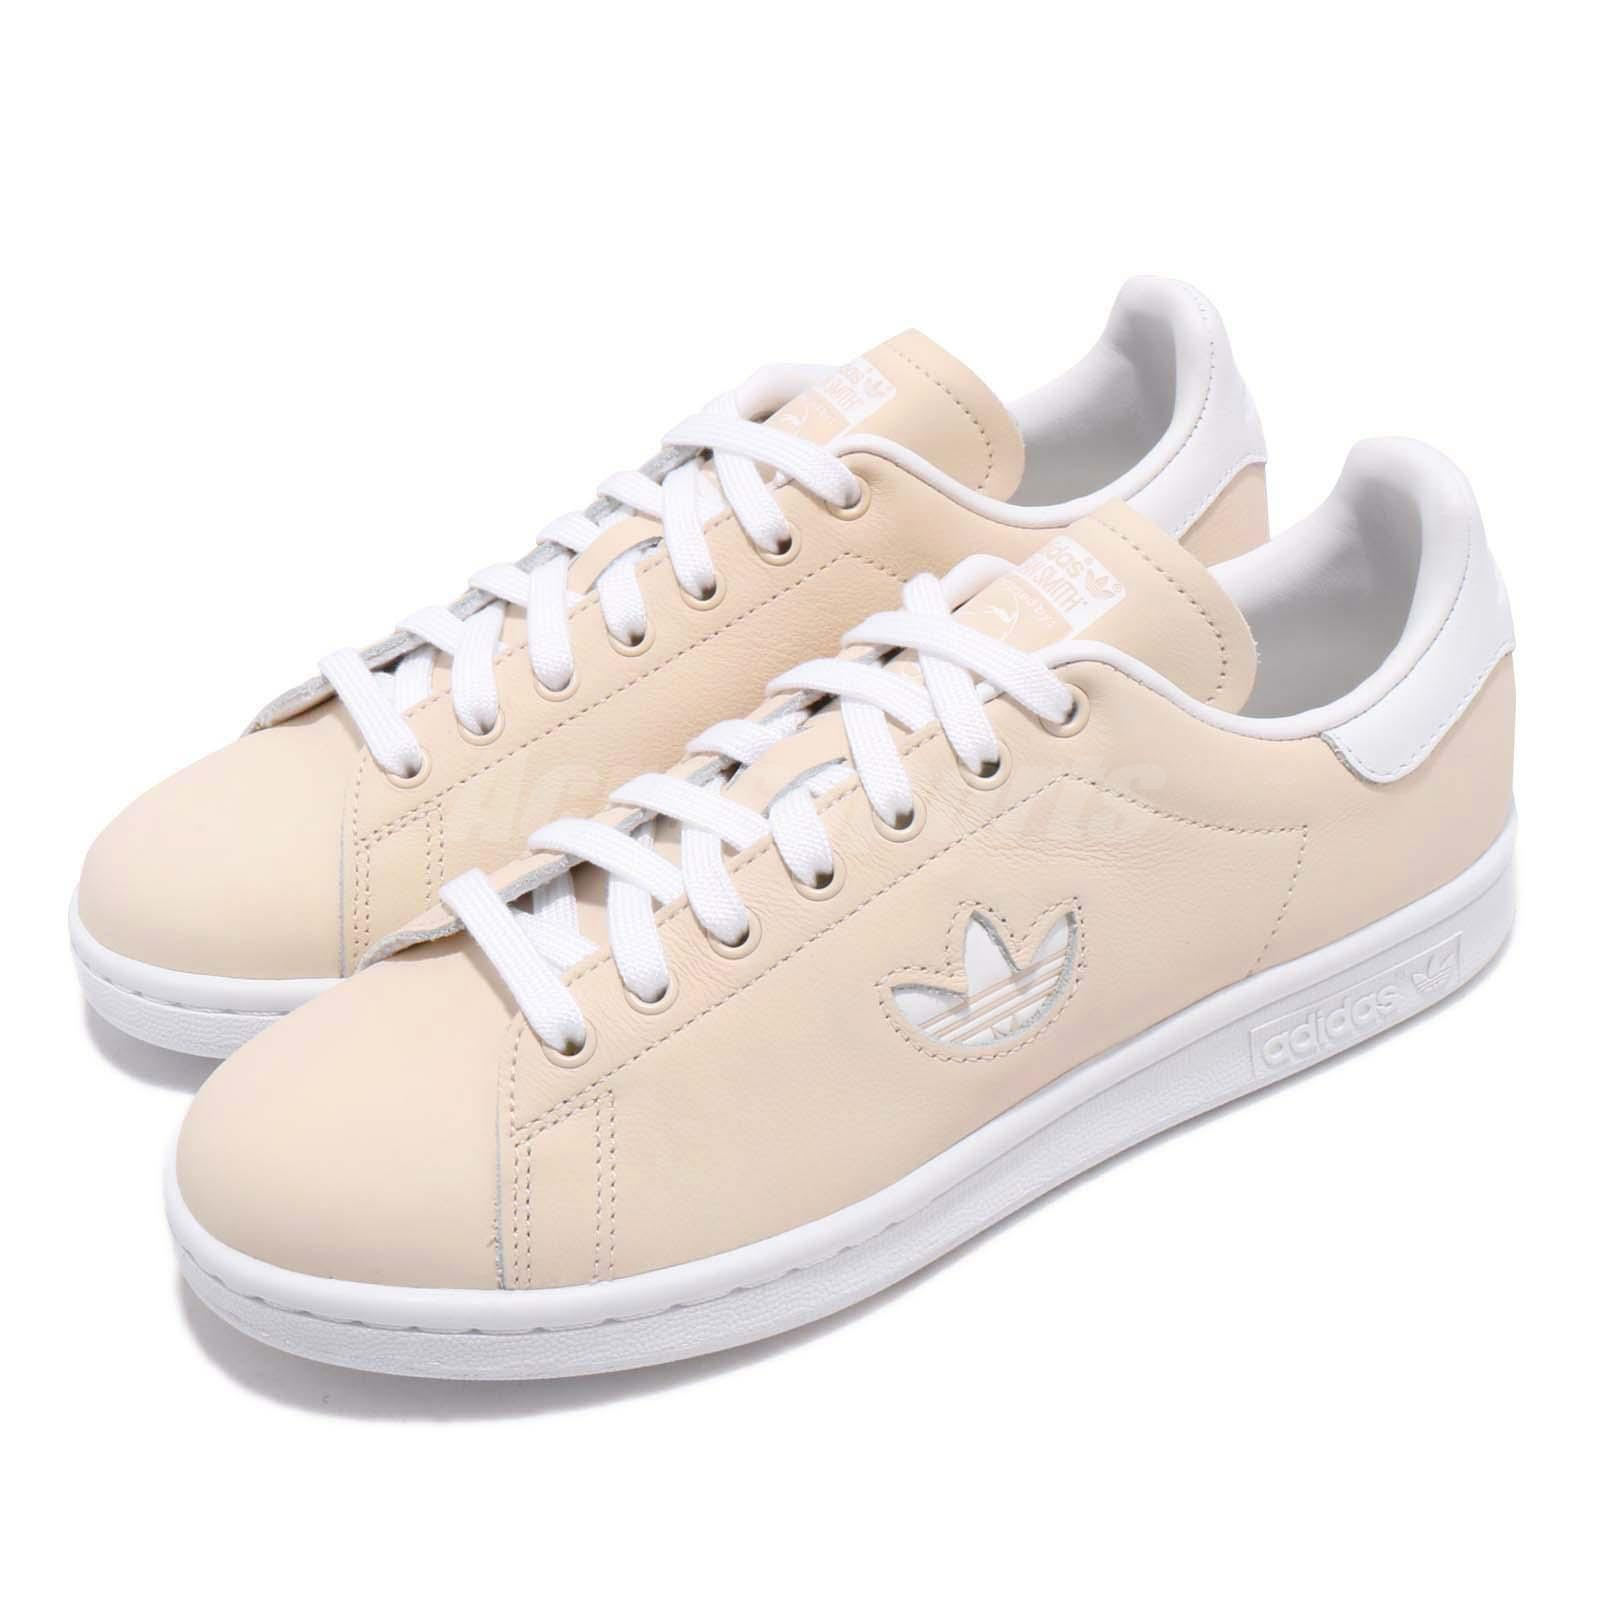 f33169560dd Details about adidas Originals Stan Smith W Beige White Women Casual  Lifestyle Shoes CG6794